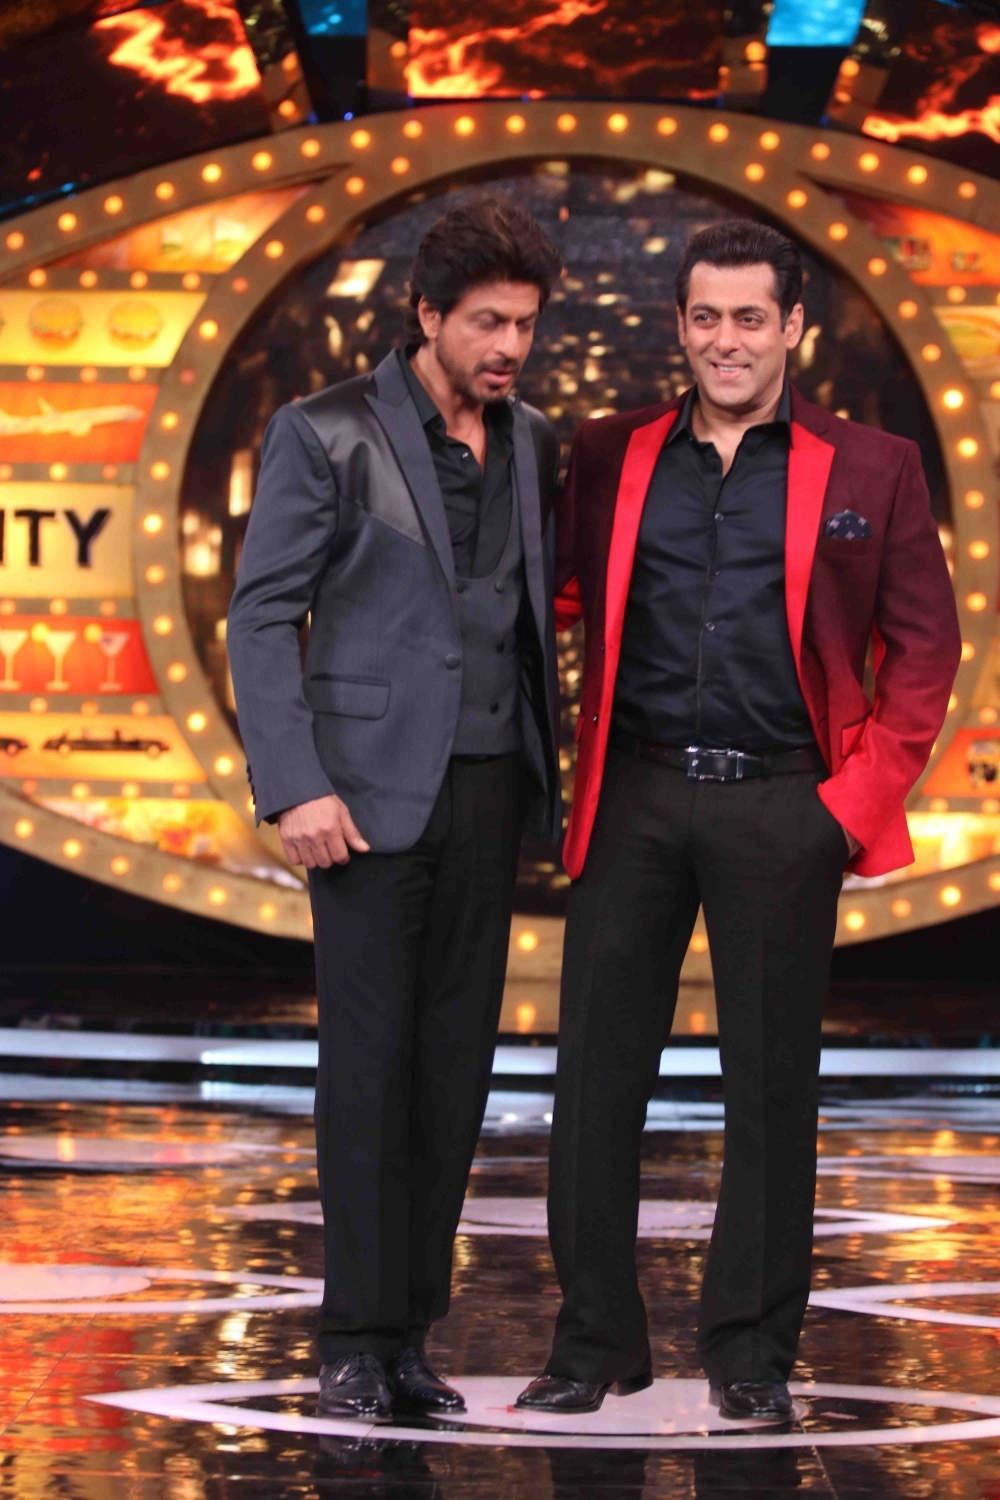 Mumbai: Actors Shah Rukh Khan with Salman Khan on the sets of Bigg Boss season 10 during the promotion of film Raees in Mumbai on Jan 20, 2017. (Photo: (IANS)